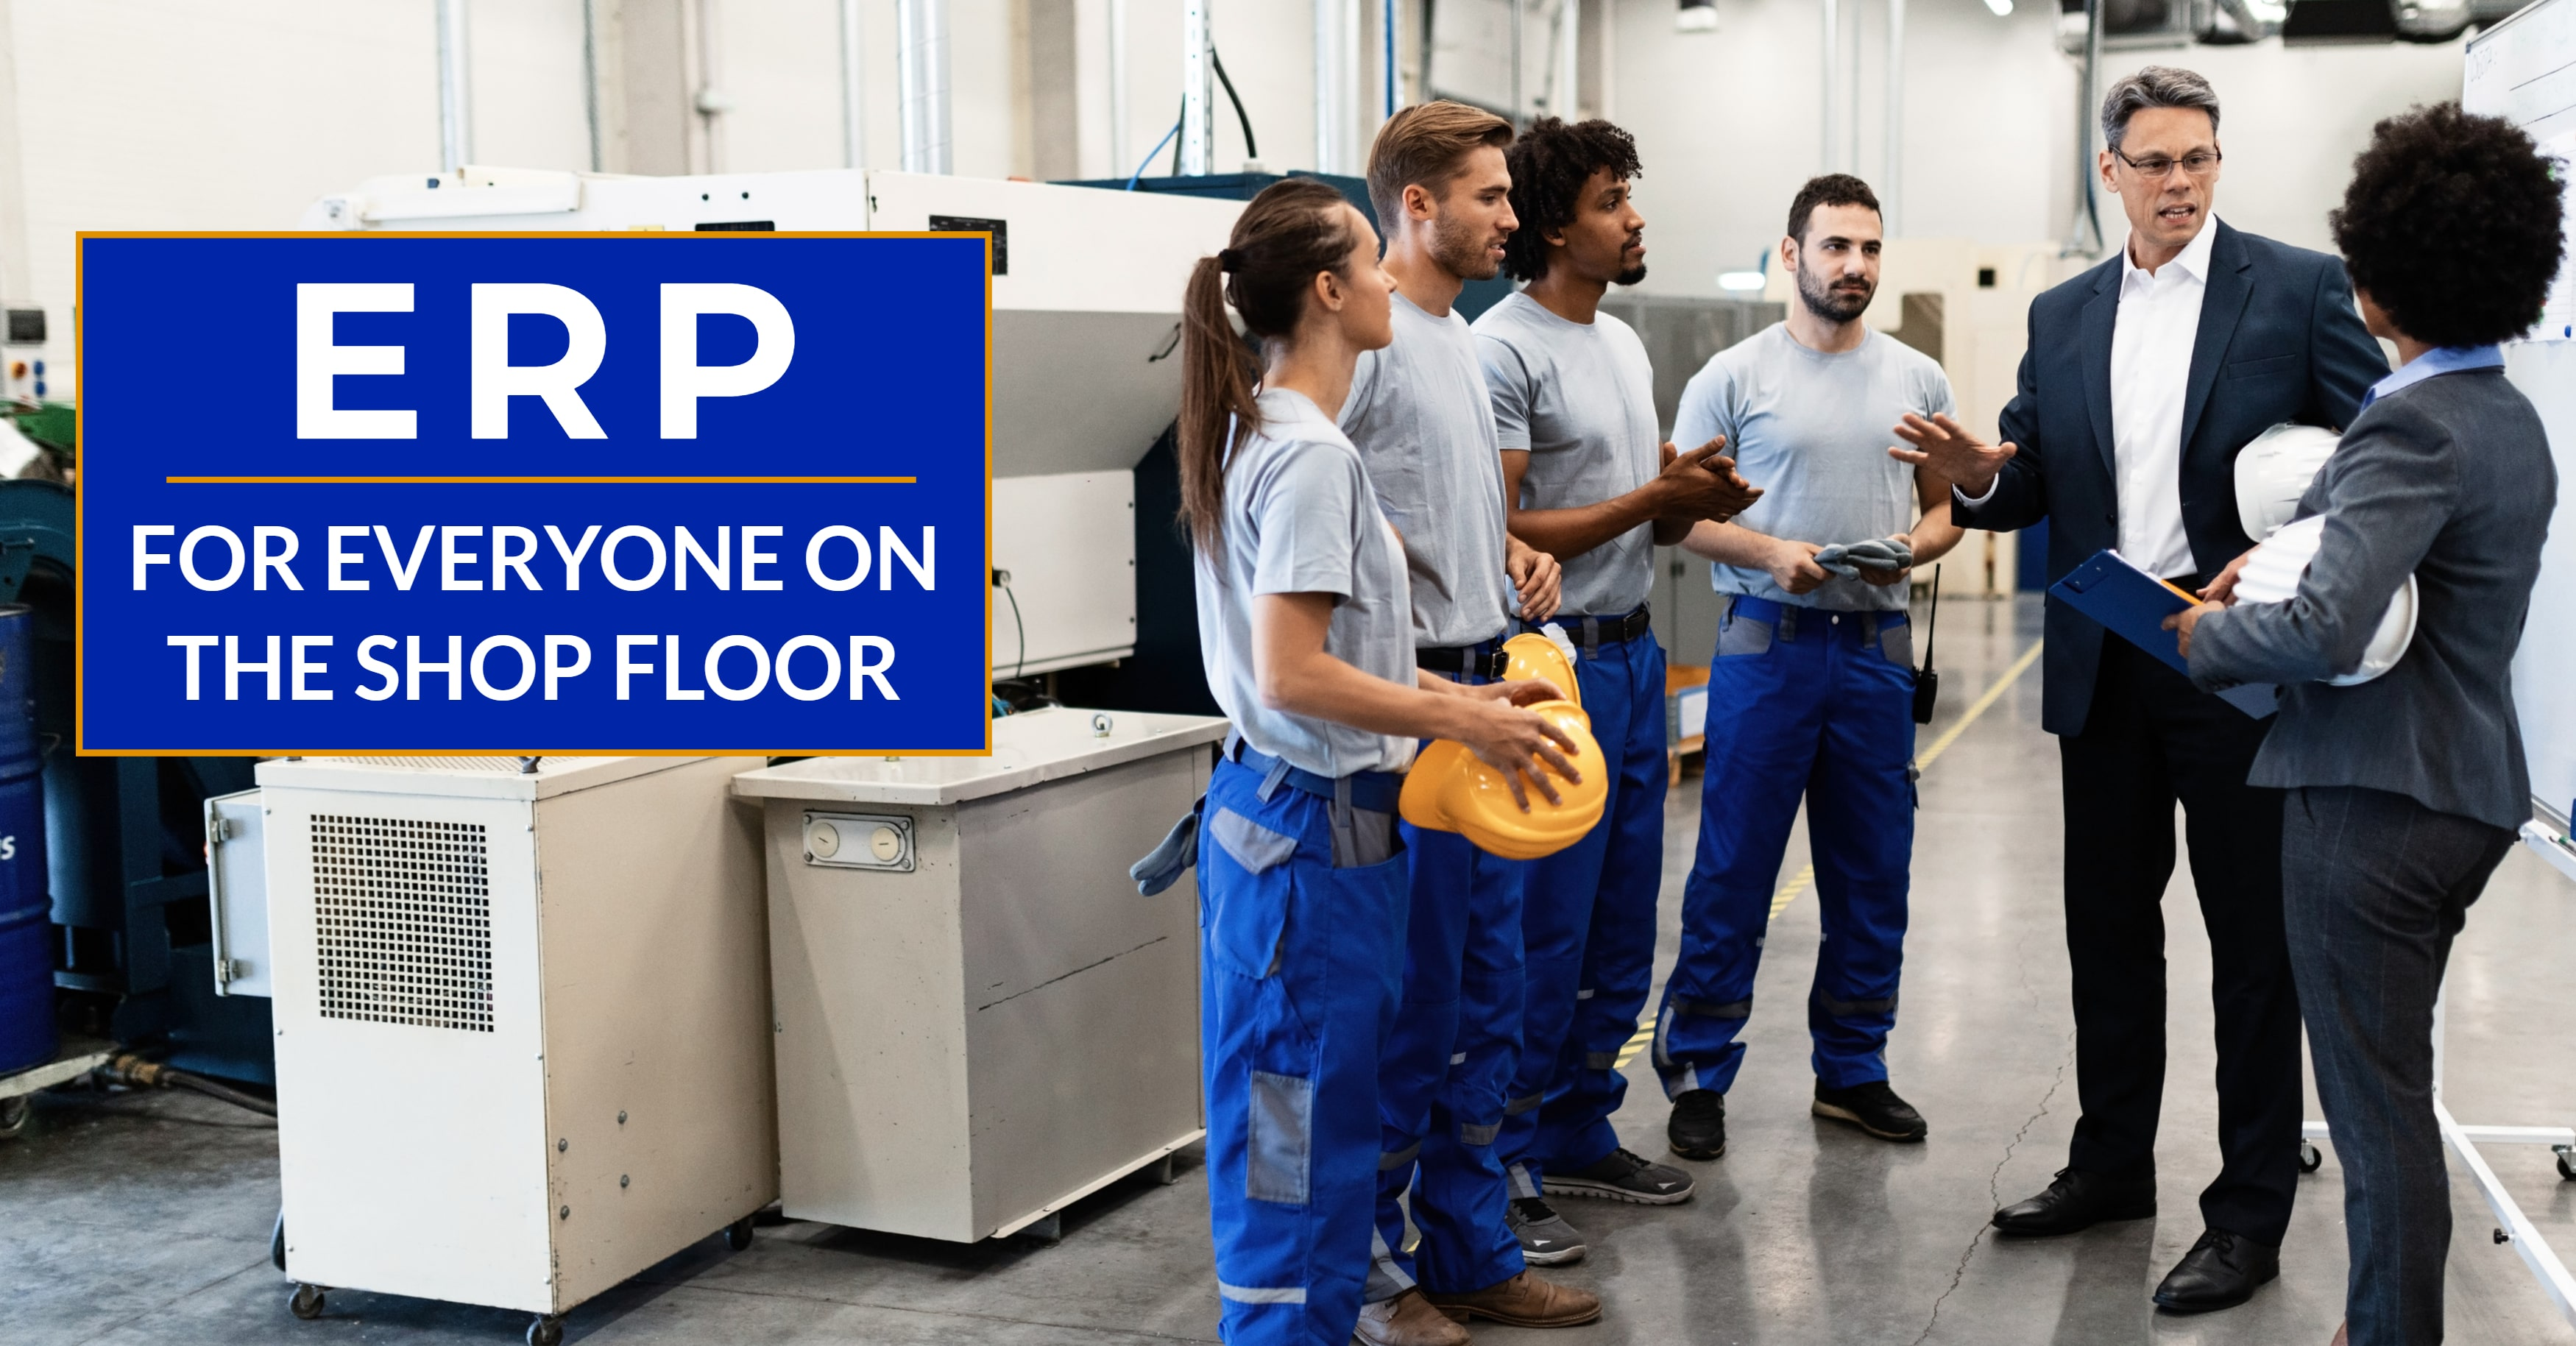 How ERP Can Help Everyone on the Shop Floor